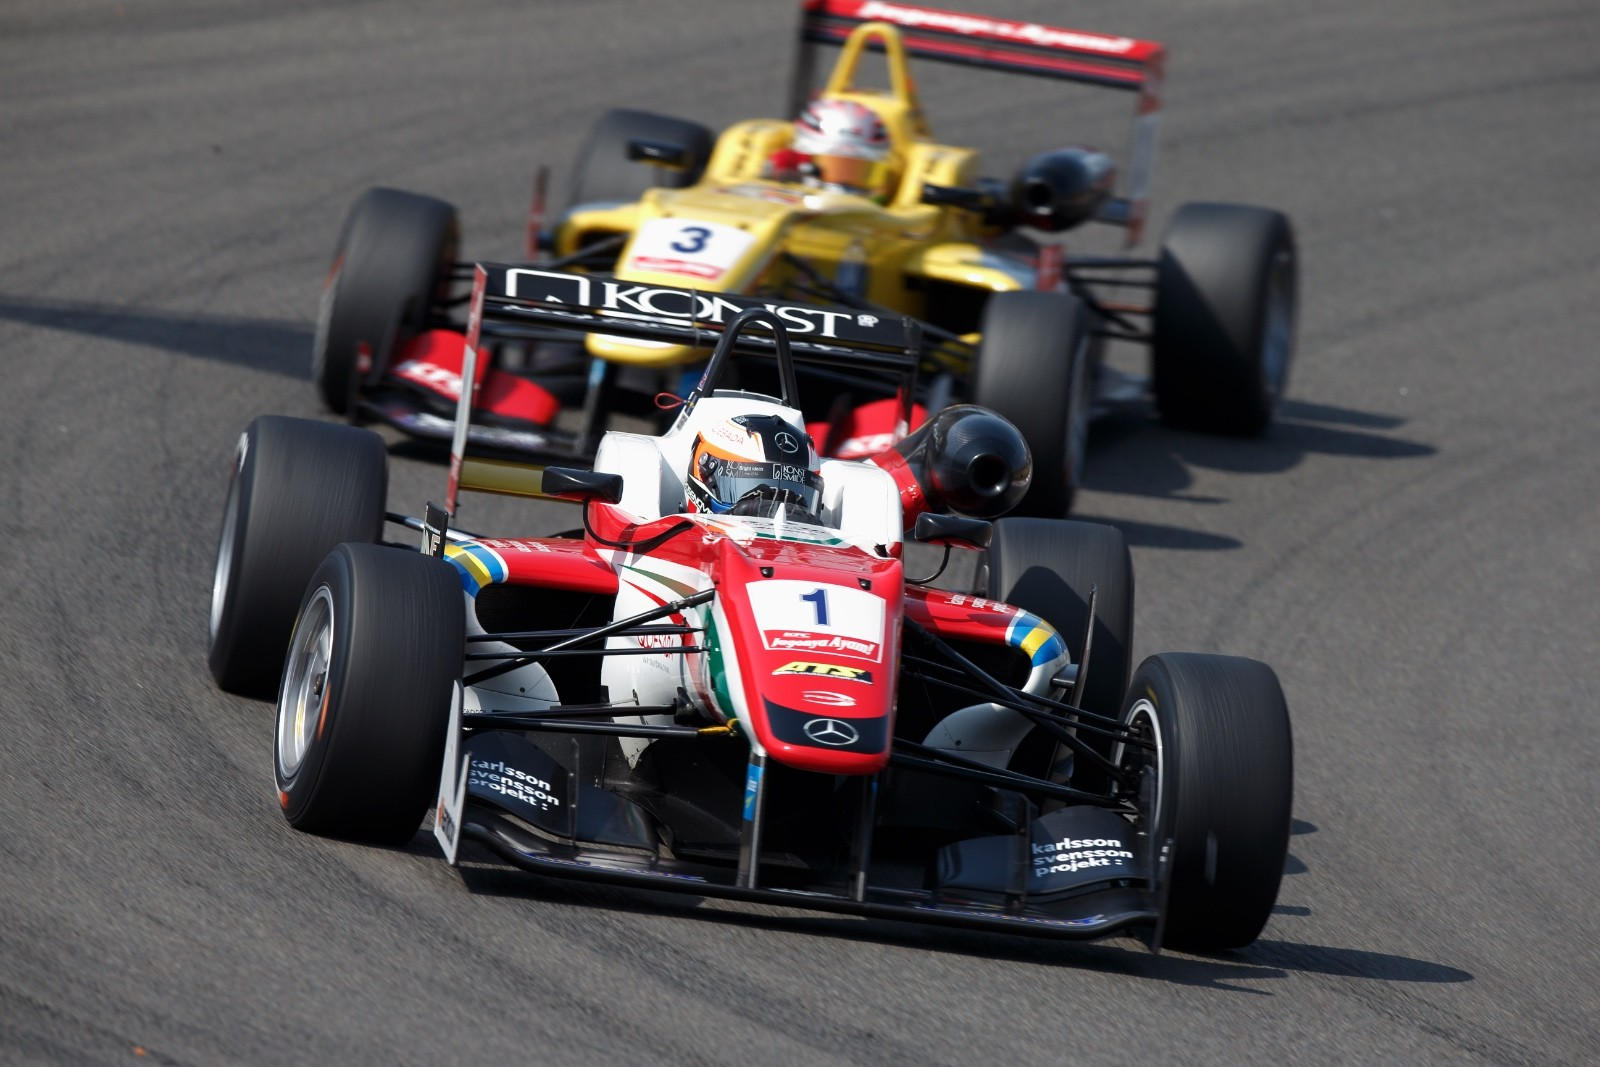 Mercedes-Benz Stars and Cars 2015 to Include a Race of Champions ...